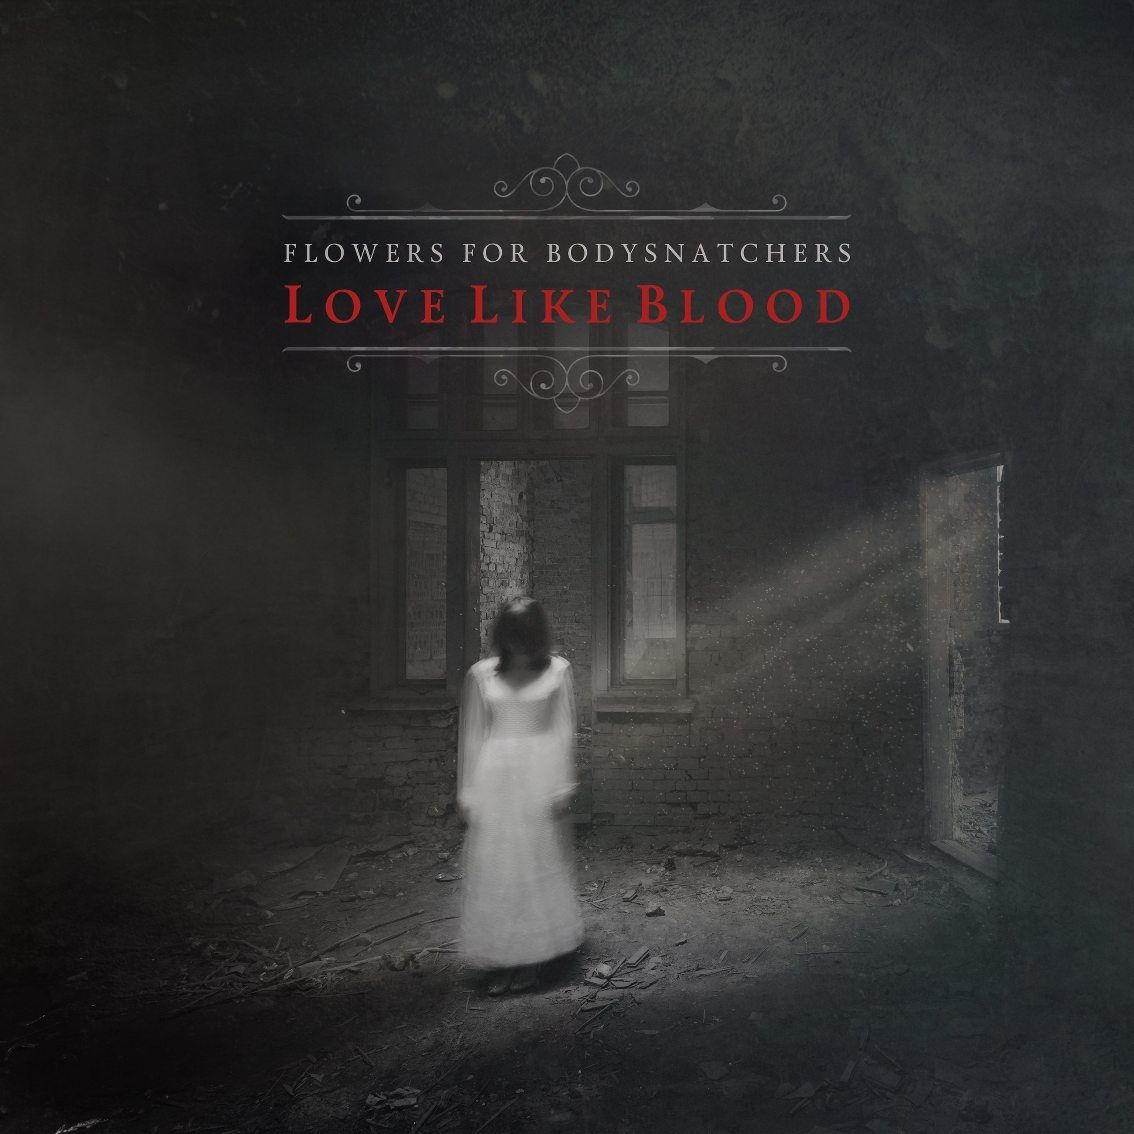 Cryo Chamber releases the Flowers for Bodysnatchers album'Love Like Blood' + offers free shipping on all U.S. orders